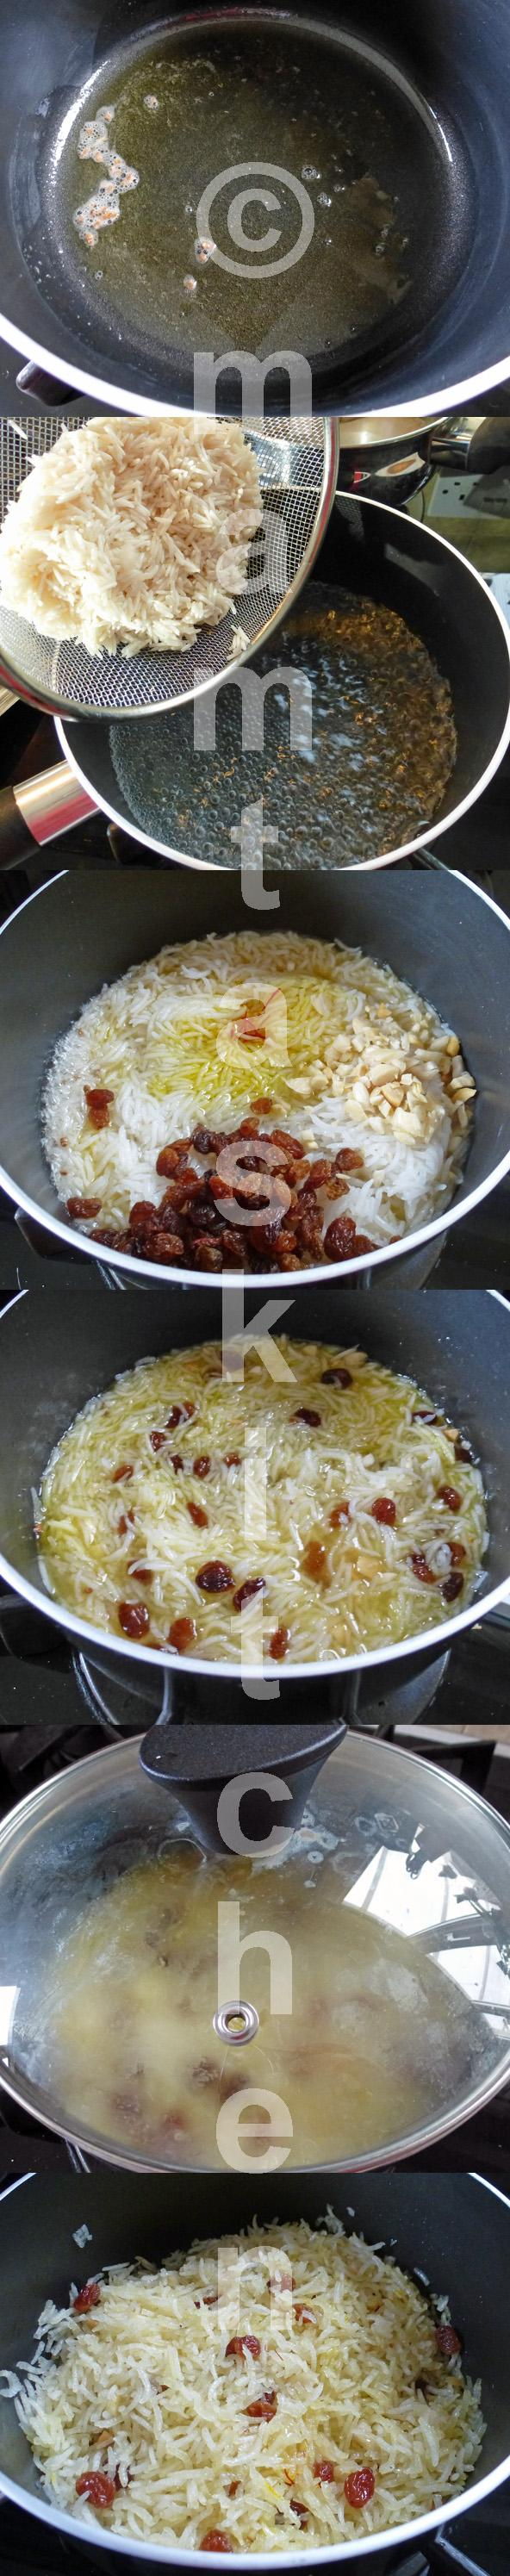 Sweet Rice 1, Traditional-Cooked in Syrup